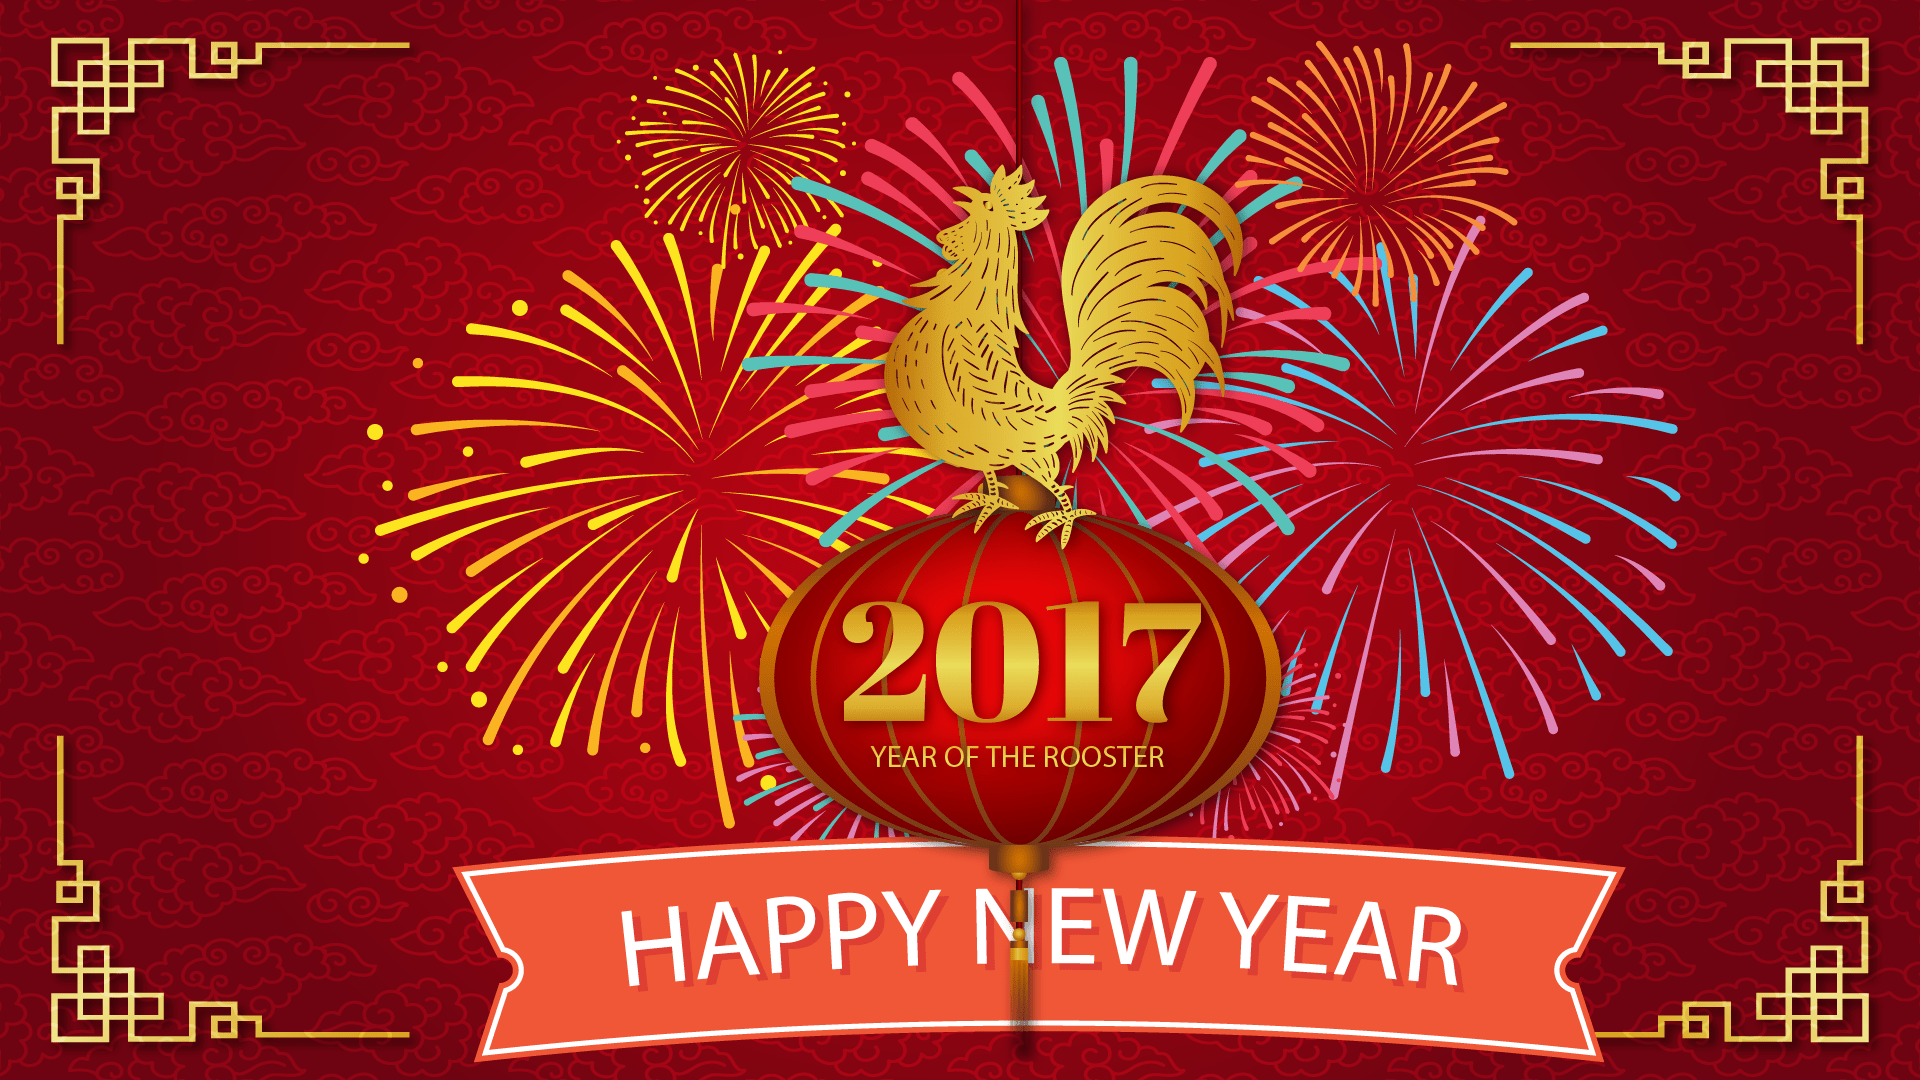 New Year-Rooster with fireworks